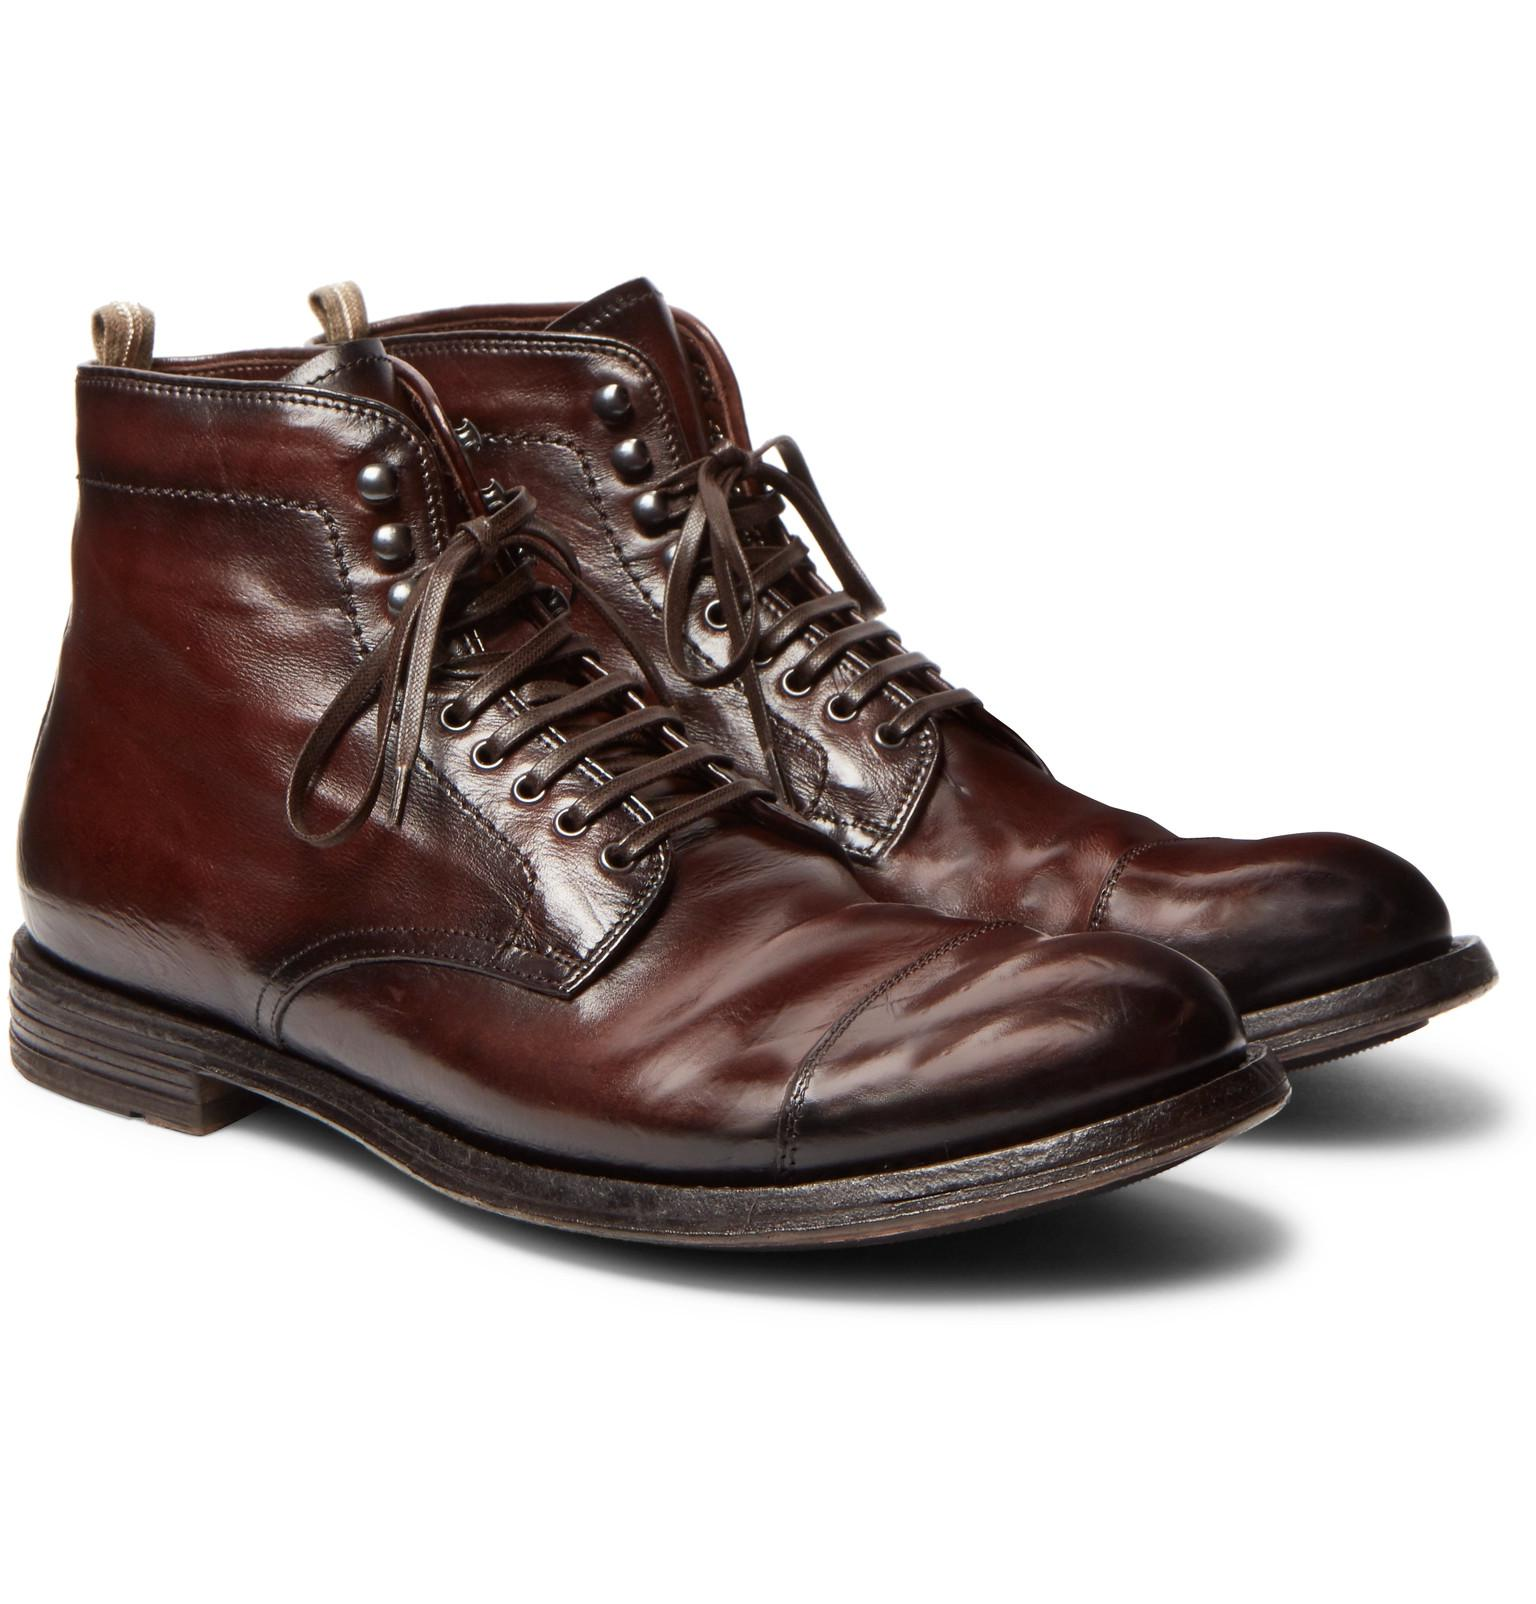 Shearling-lined Full-grain Leather Boots Officine Creative Ost Release Dates Hard Wearing Clearance Shop Offer Cheap Authentic Outlet Vx07SqPk